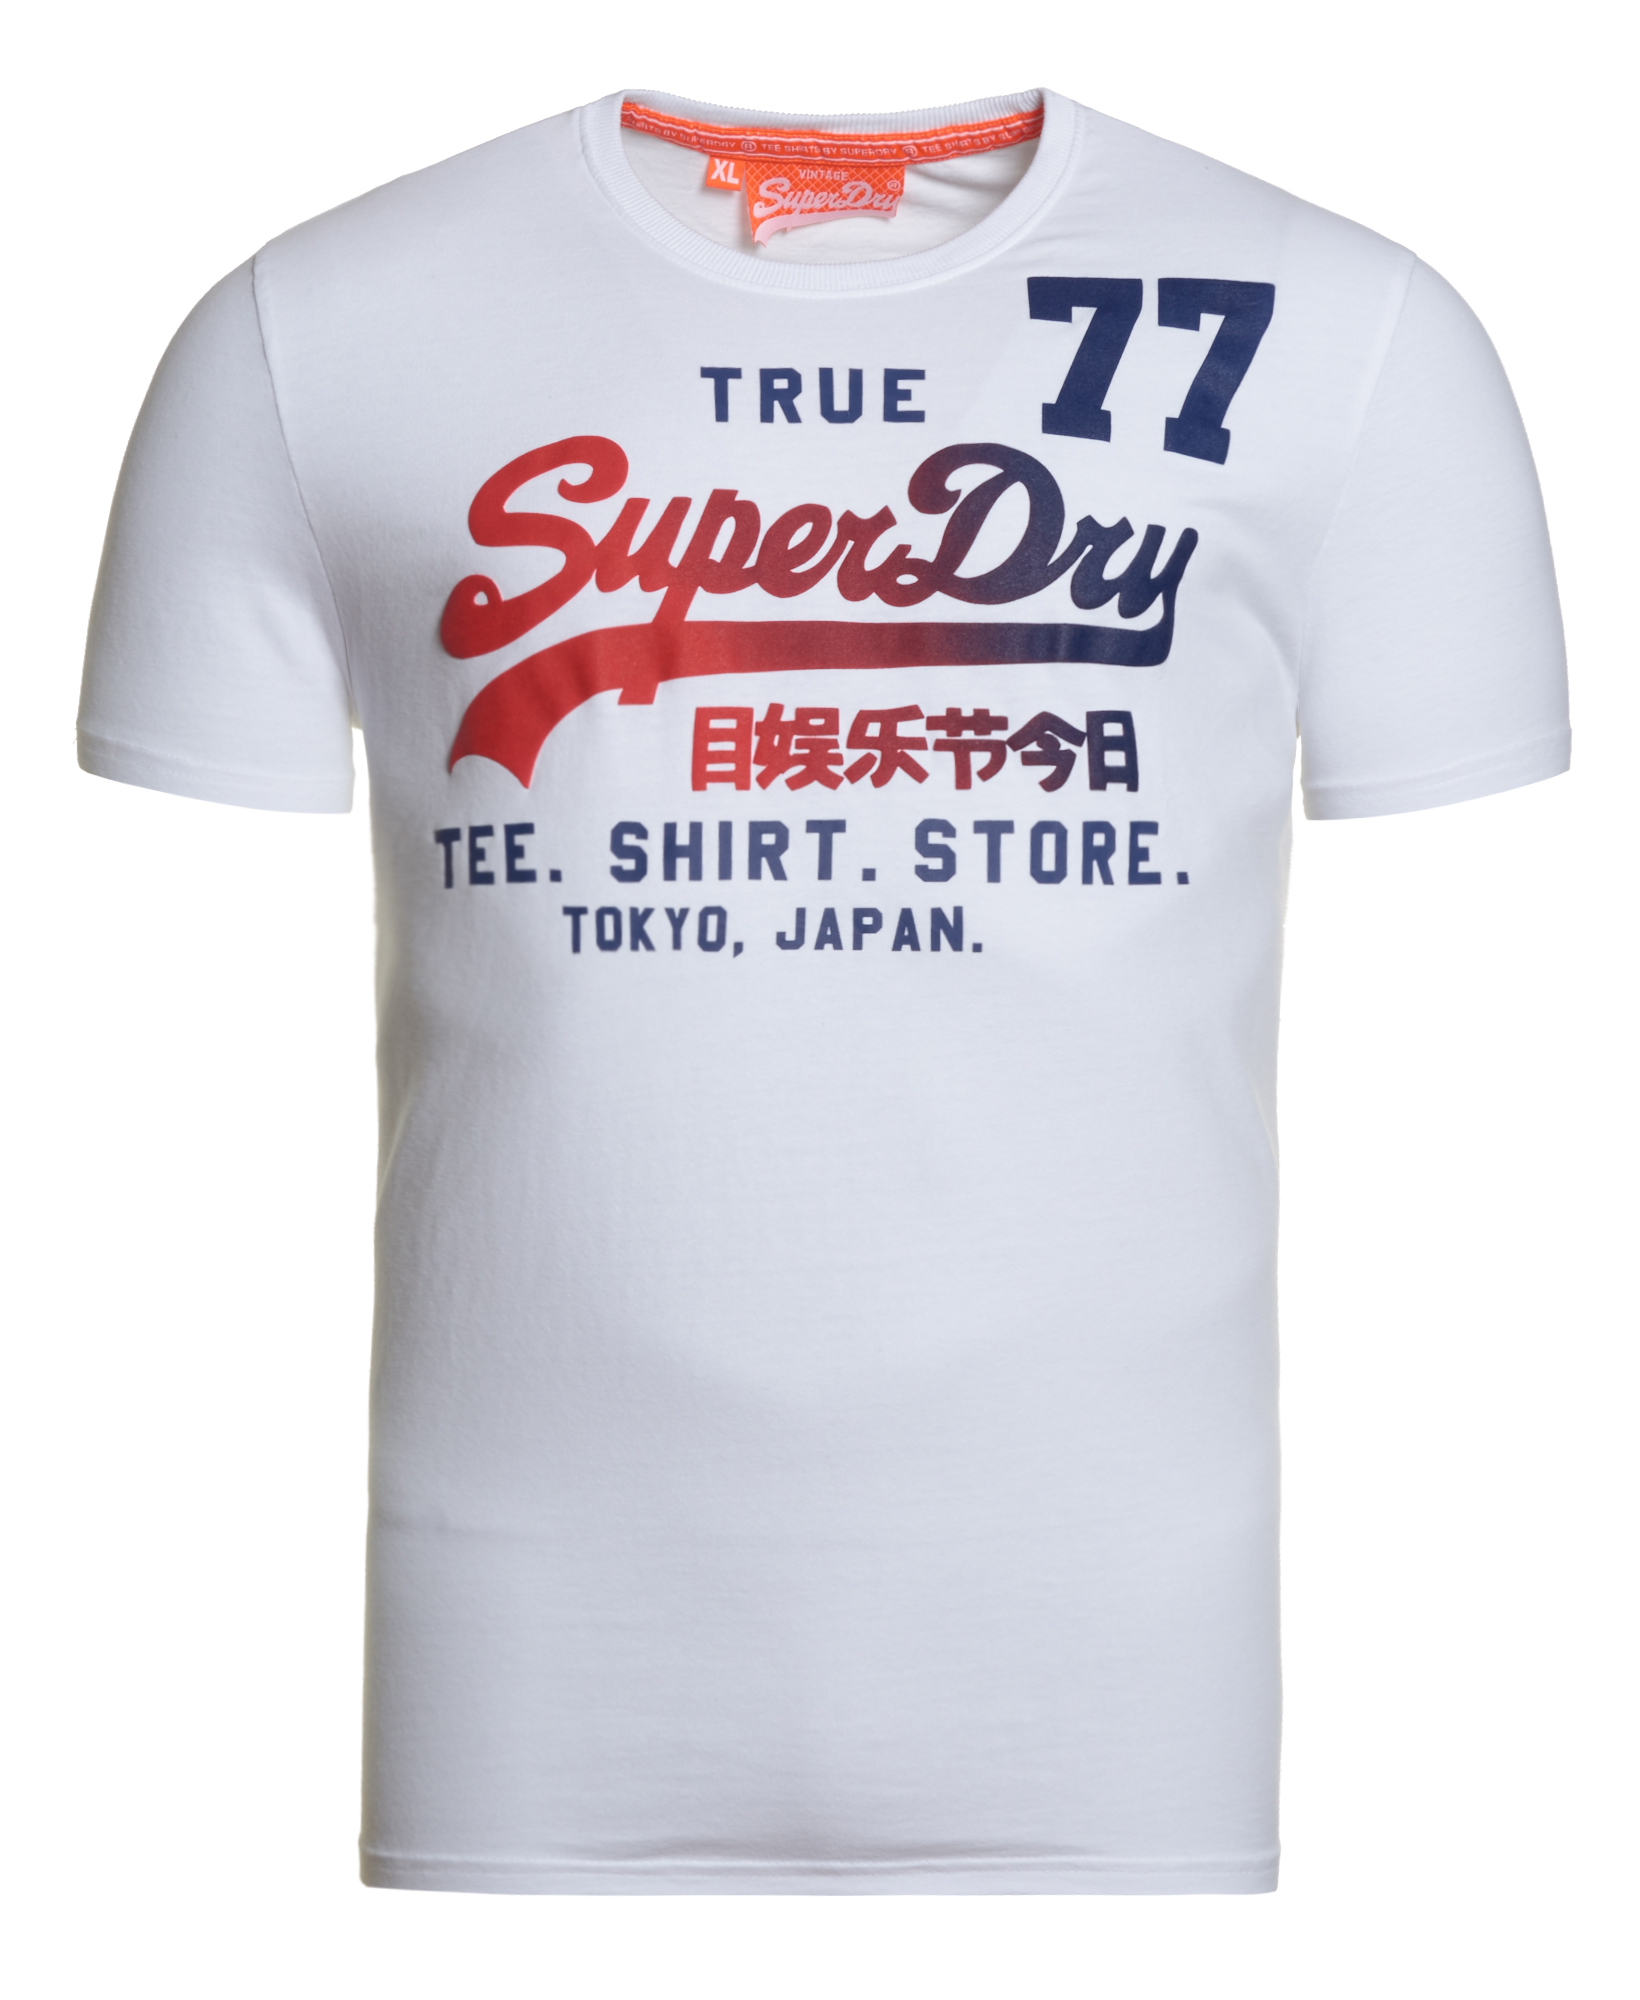 neues herren superdry shirt shop 77 t shirt optic ebay. Black Bedroom Furniture Sets. Home Design Ideas